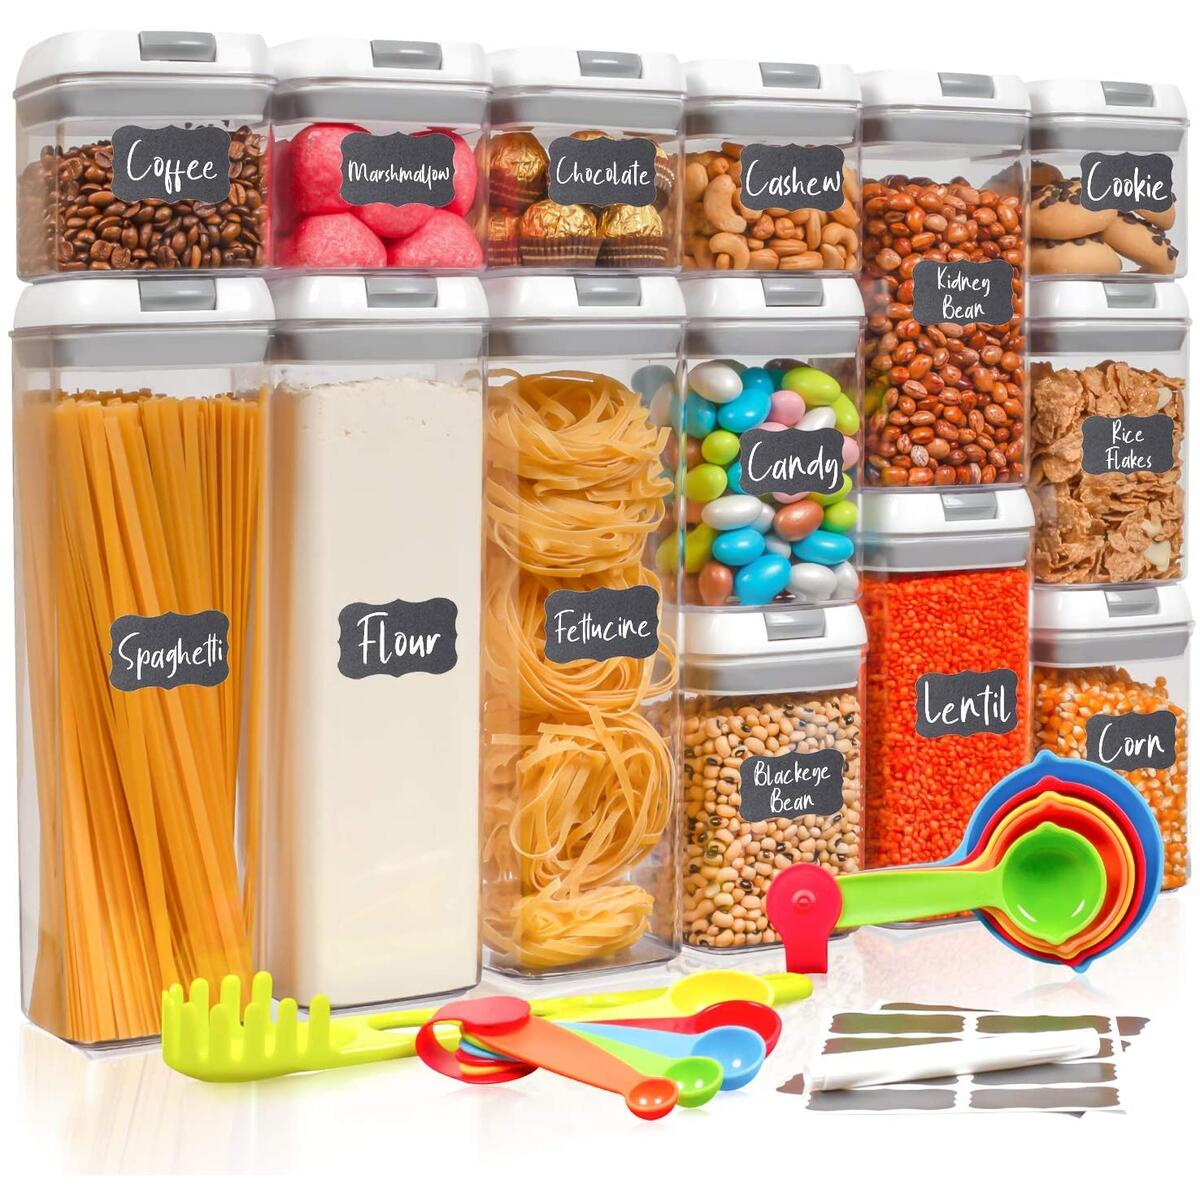 Dookeh Airtight Food Storage Containers with Lids, 14 Piece Kitchen Pantry Organization and Storage Set, Plastic Organizer Canister Sets for Kitchen Counter, Great for Flour Sugar Coffee Cereal Pasta